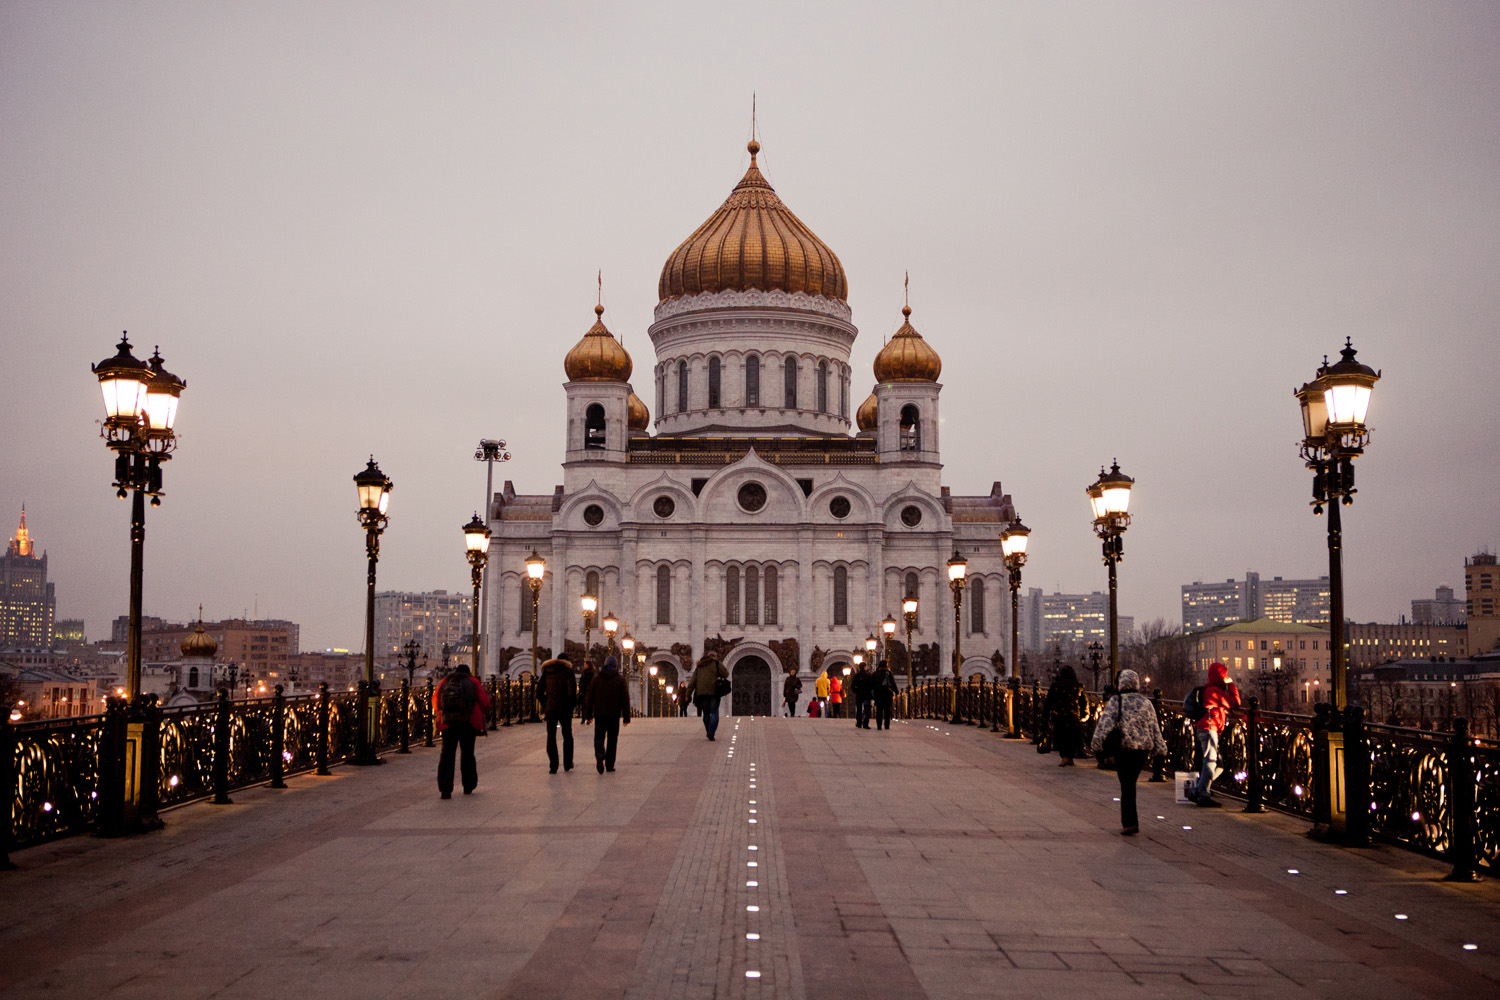 cathedral-of-christ-the-saviour-moscow_8224466015_o.jpg